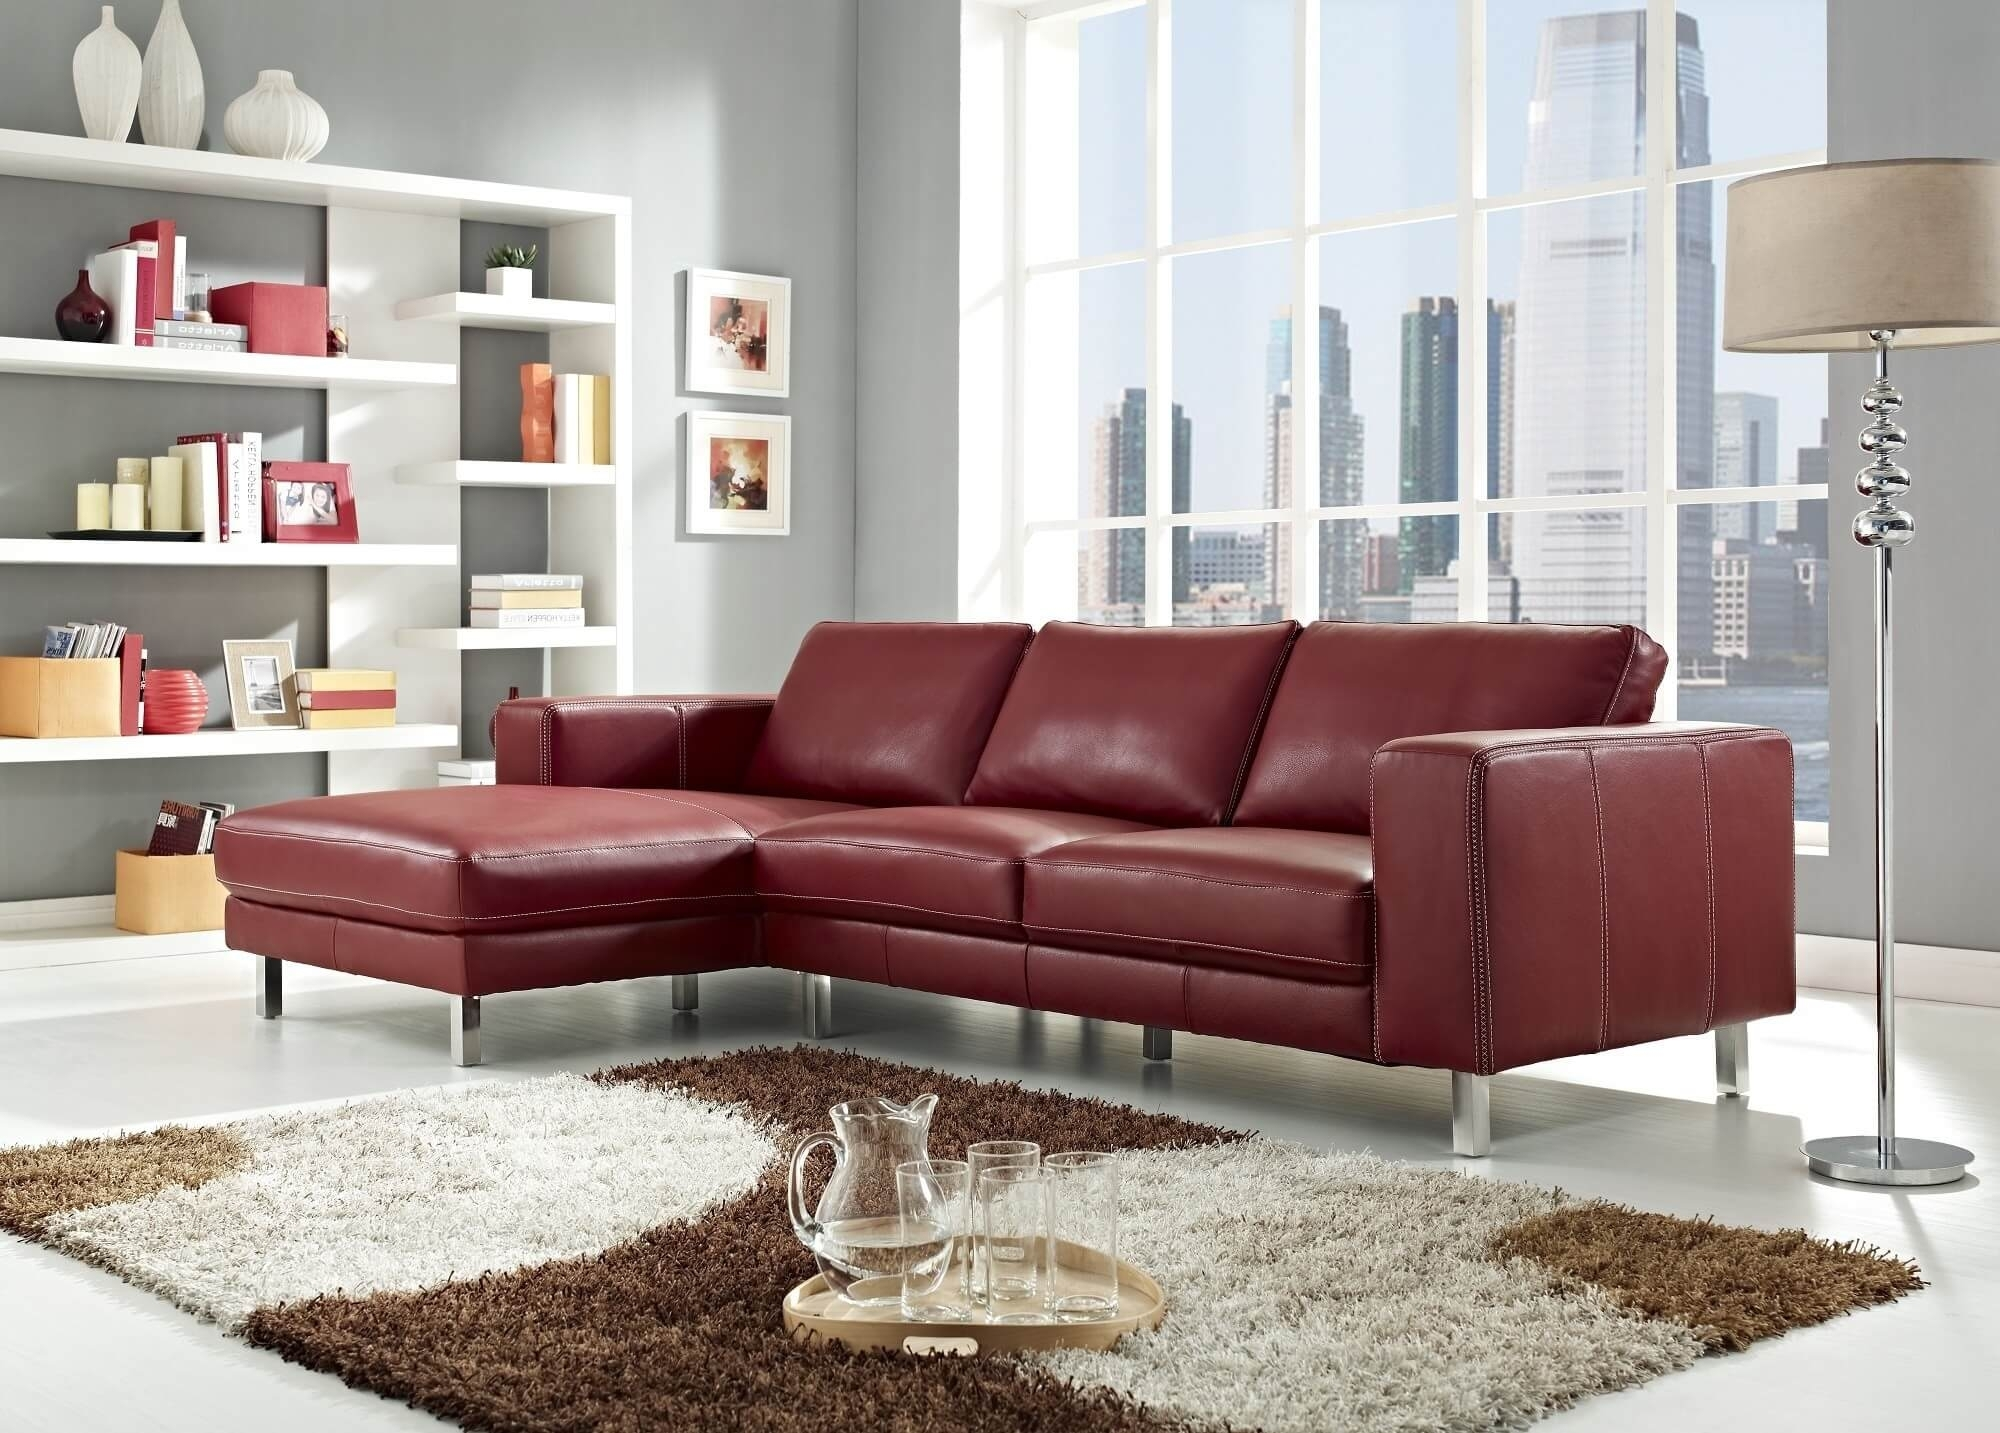 Stylish Modern Red Sectional Sofas Pertaining To Red Leather Couches For Living Room (Image 9 of 10)